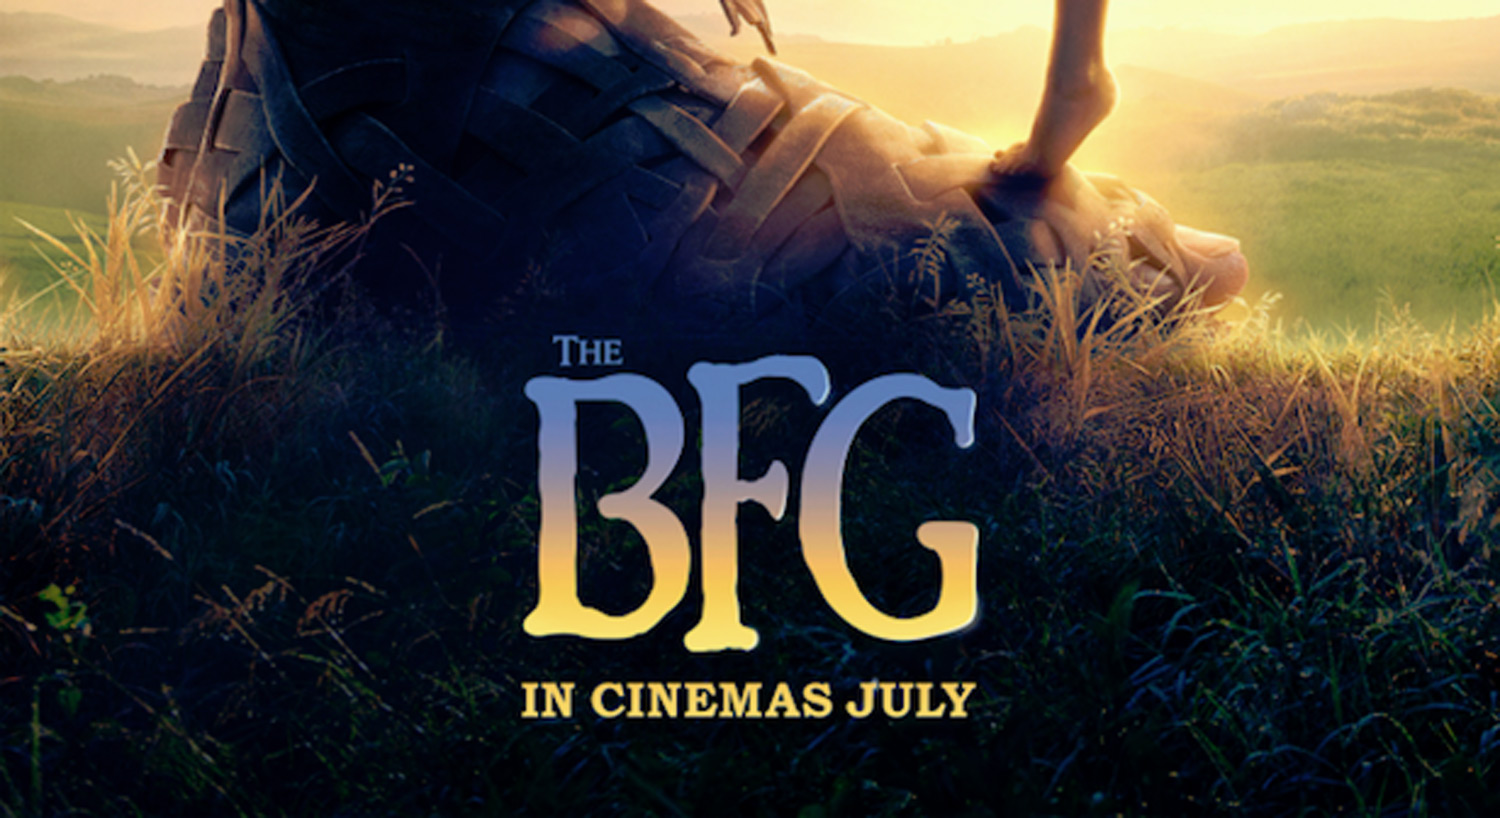 3d Wallpaper Girl And Boy Roald Dahl Classic The Bfg Is Heading To The Big Screen